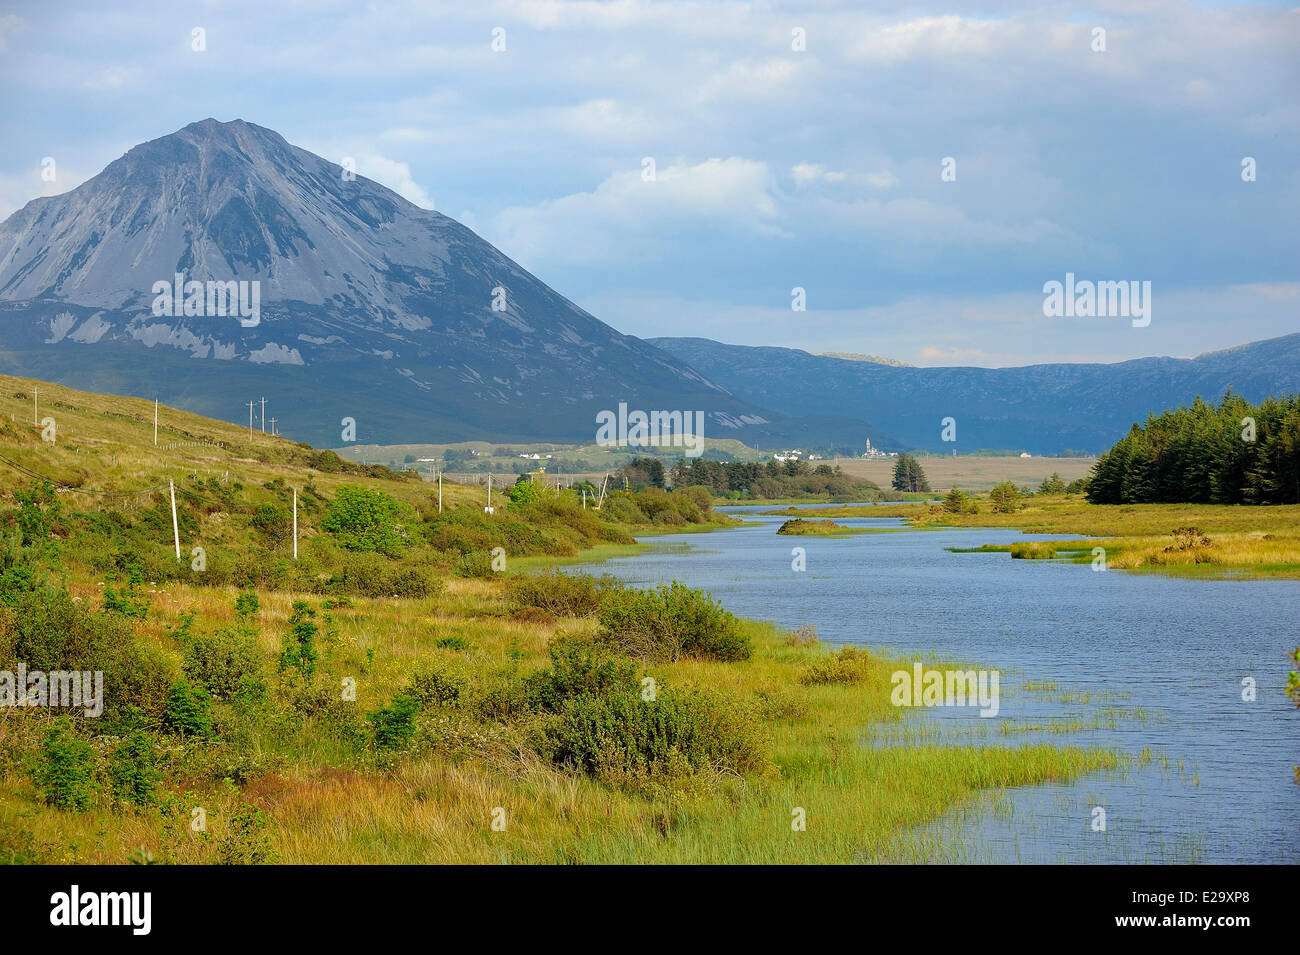 Ireland, County Donegal, Dunlewy lake and Mount Errigal (751 m) - Stock Image